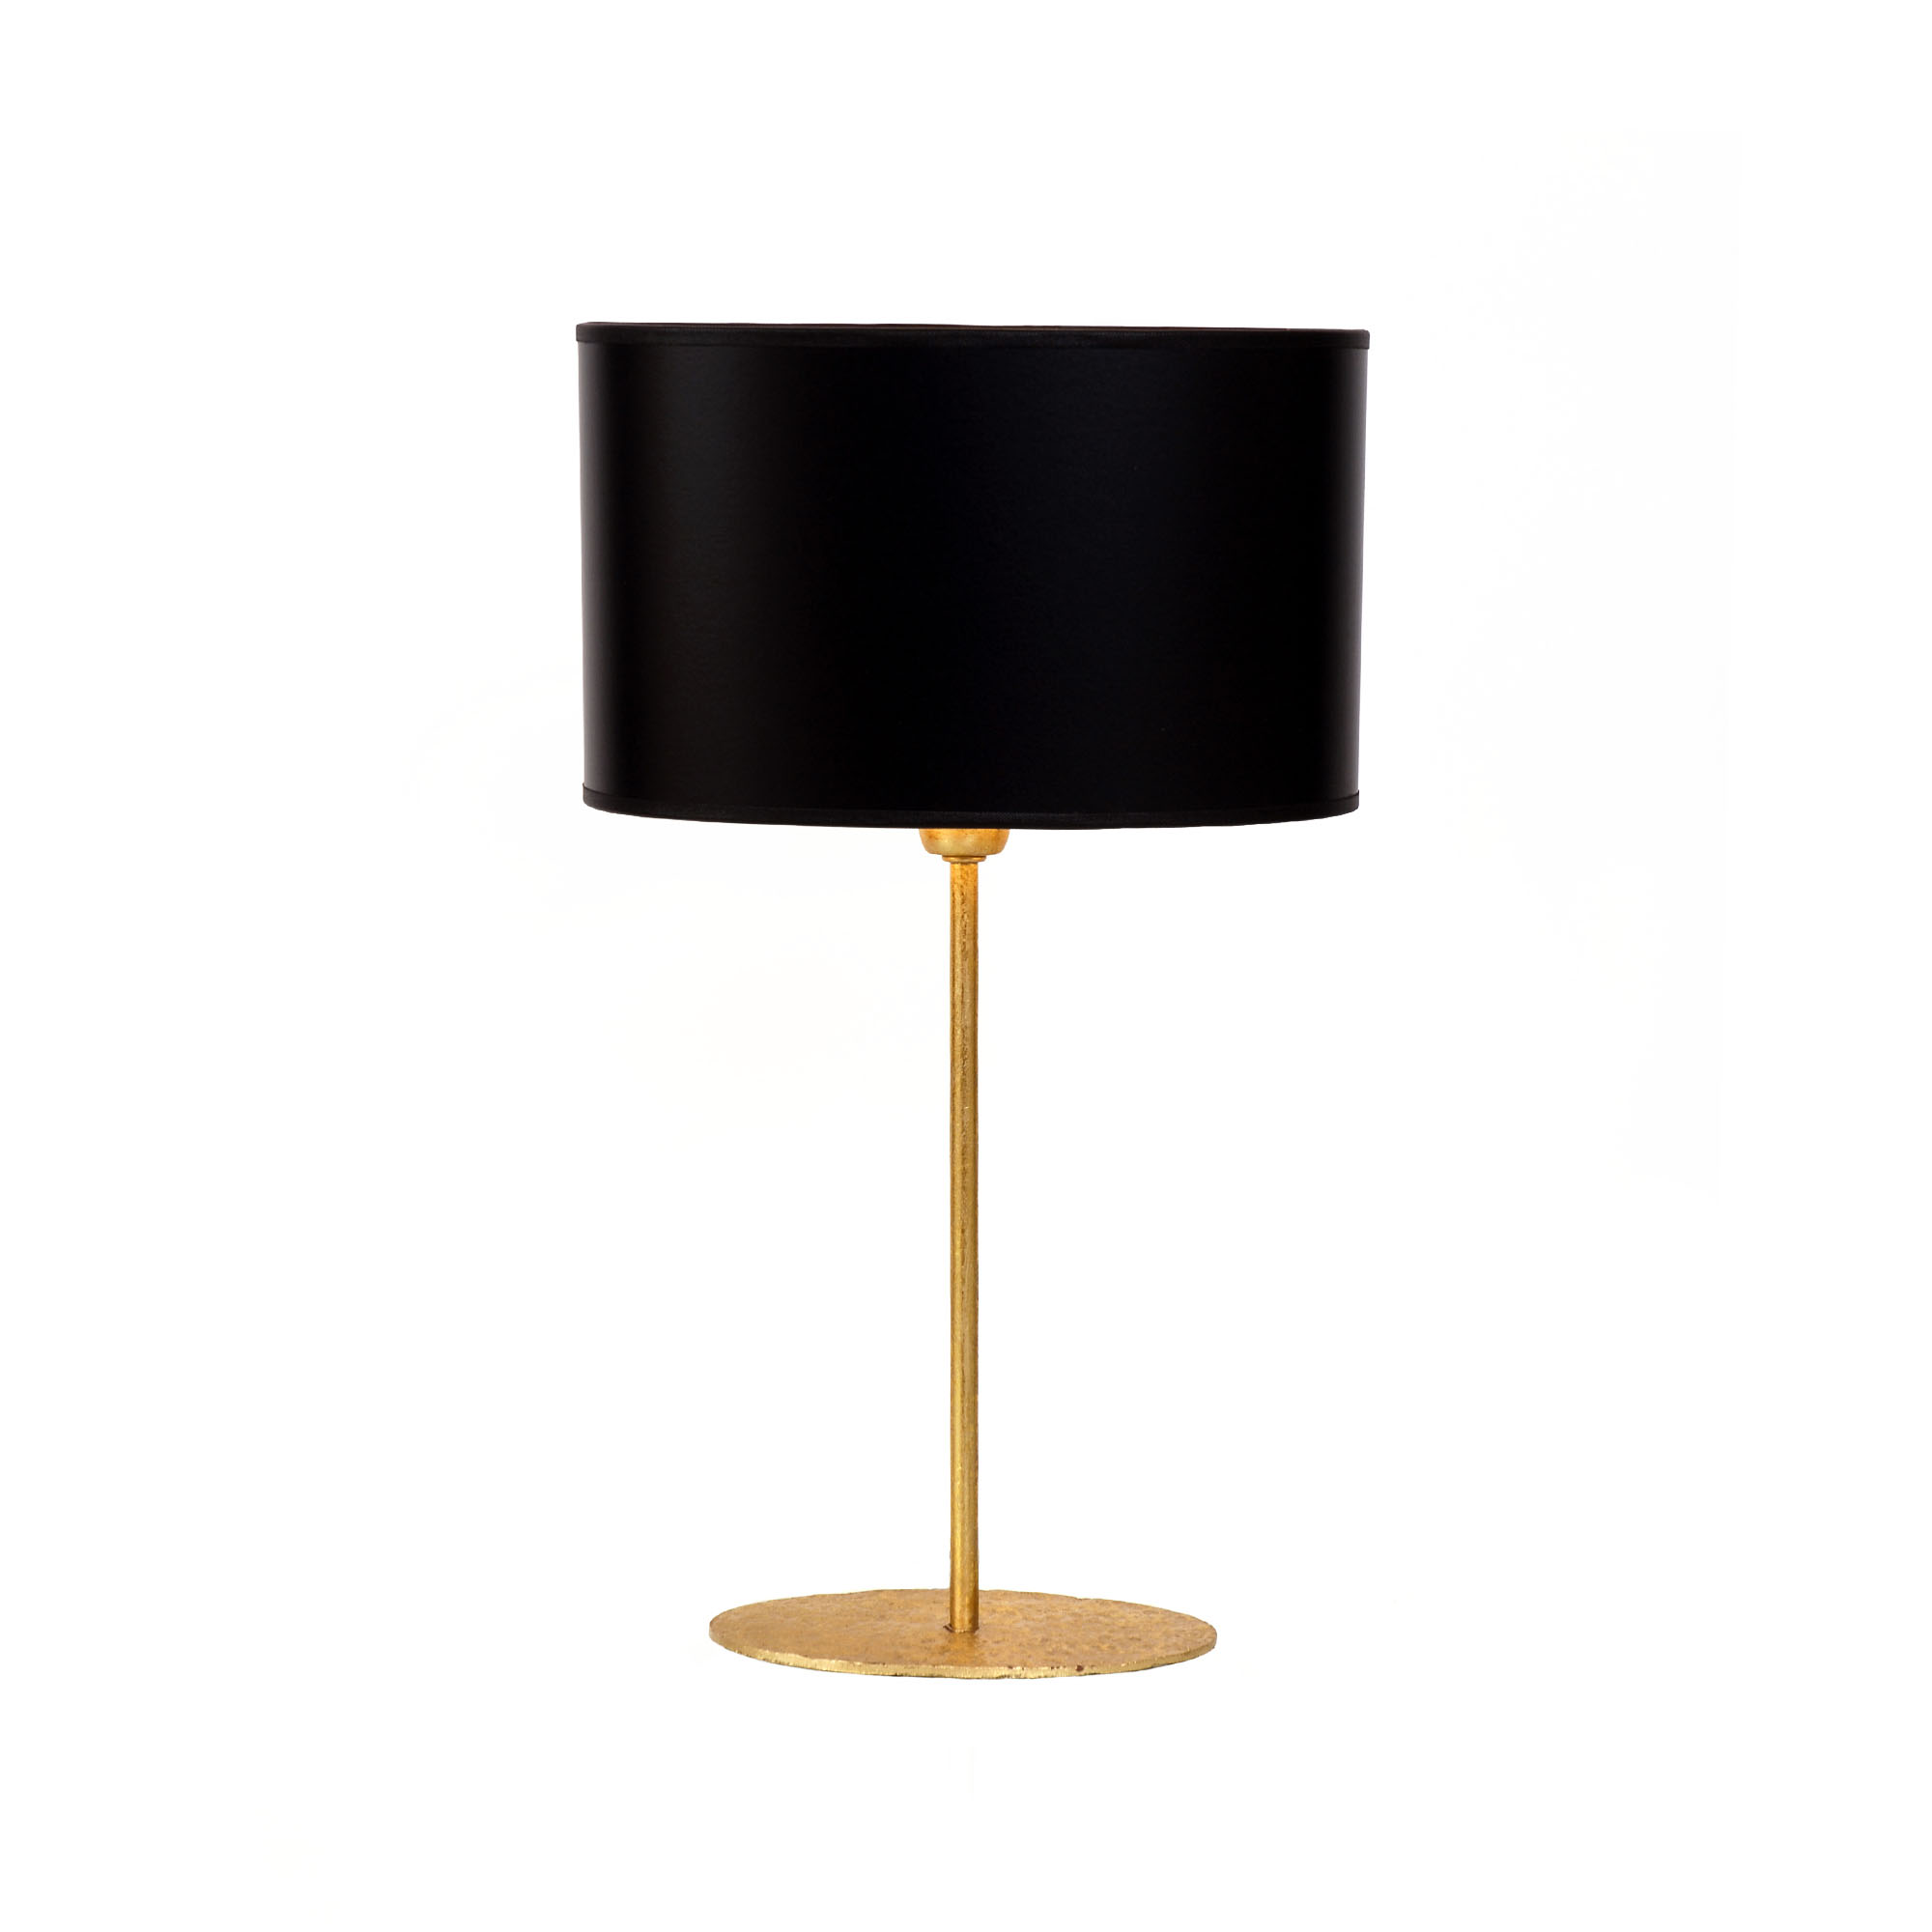 lampe schwarz innen gold lampe schwarz innen gold haus planen lampe schwarz innen gold bestes. Black Bedroom Furniture Sets. Home Design Ideas